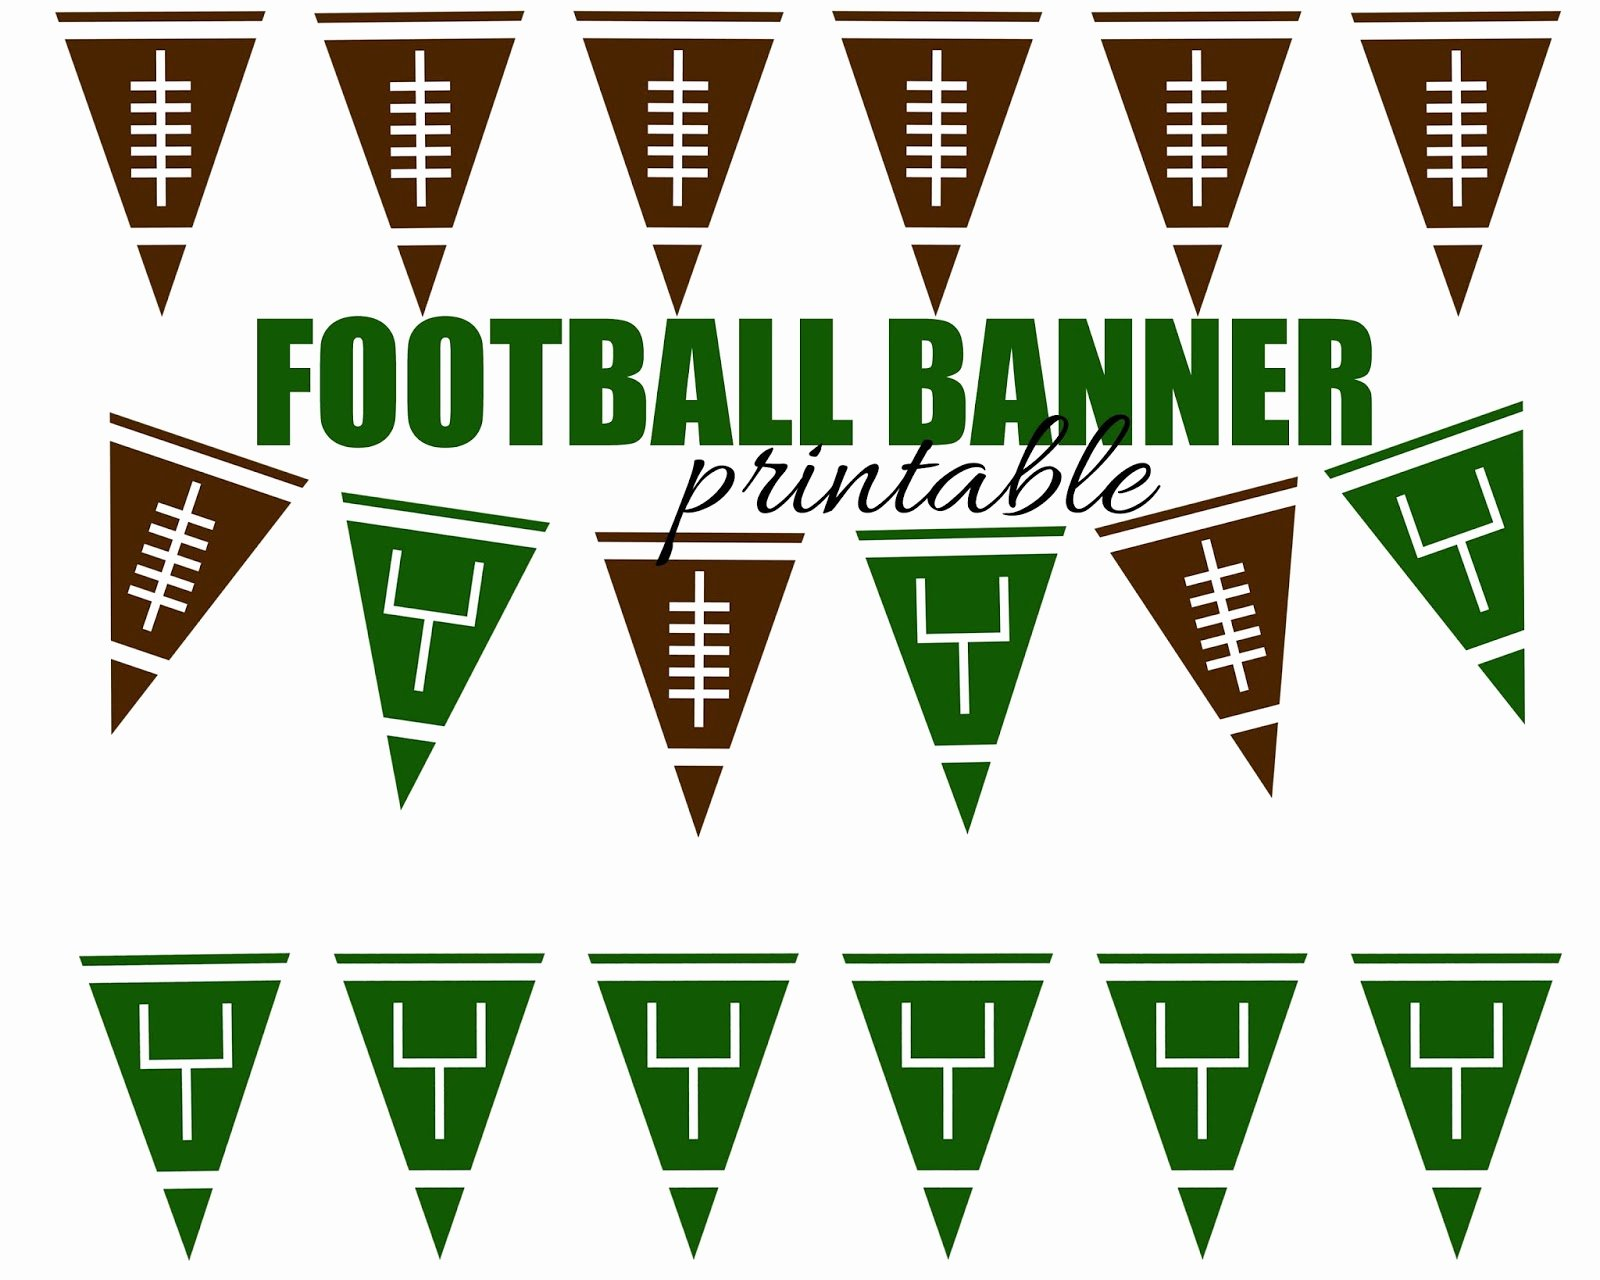 College Pennants Printable Best Of Football Subway Art Free Printable